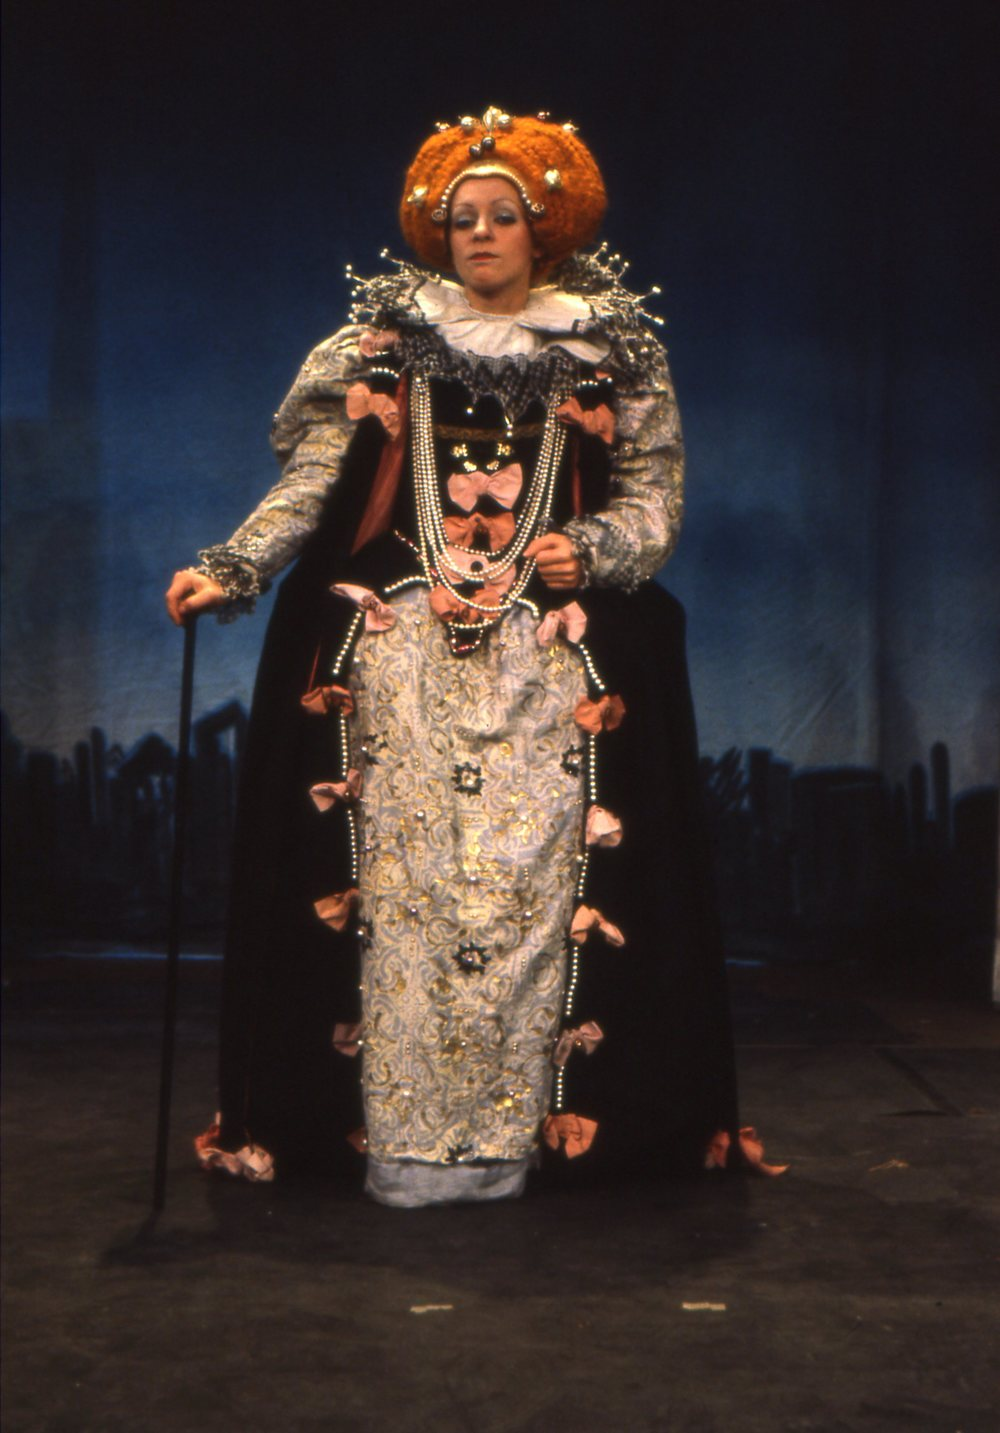 Konni Burger as Elizabeth I for Paradise Street